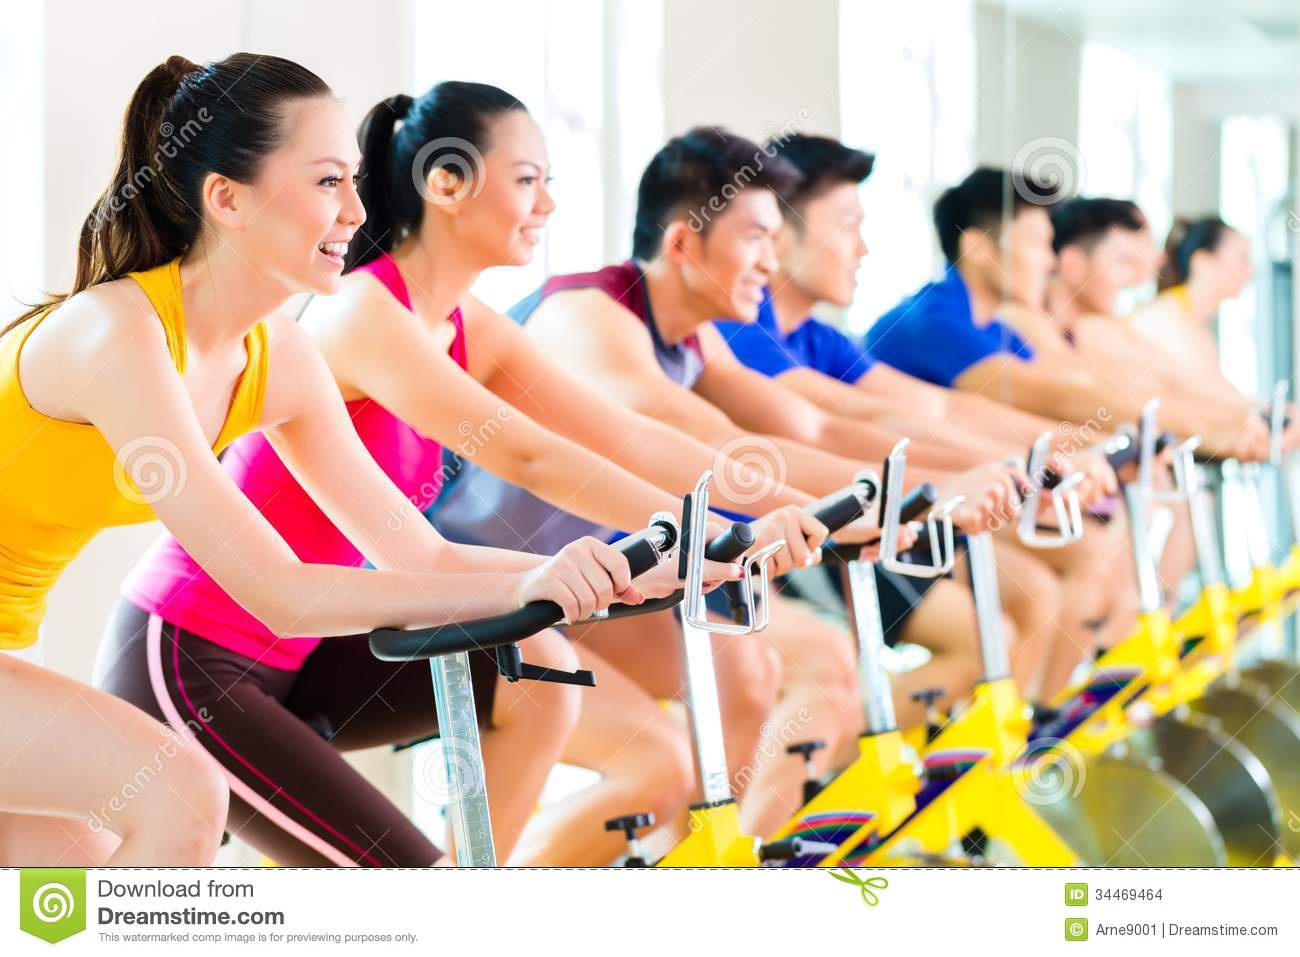 Download Asian People Spinning Bike Training At Fitness Gym Stock Photo